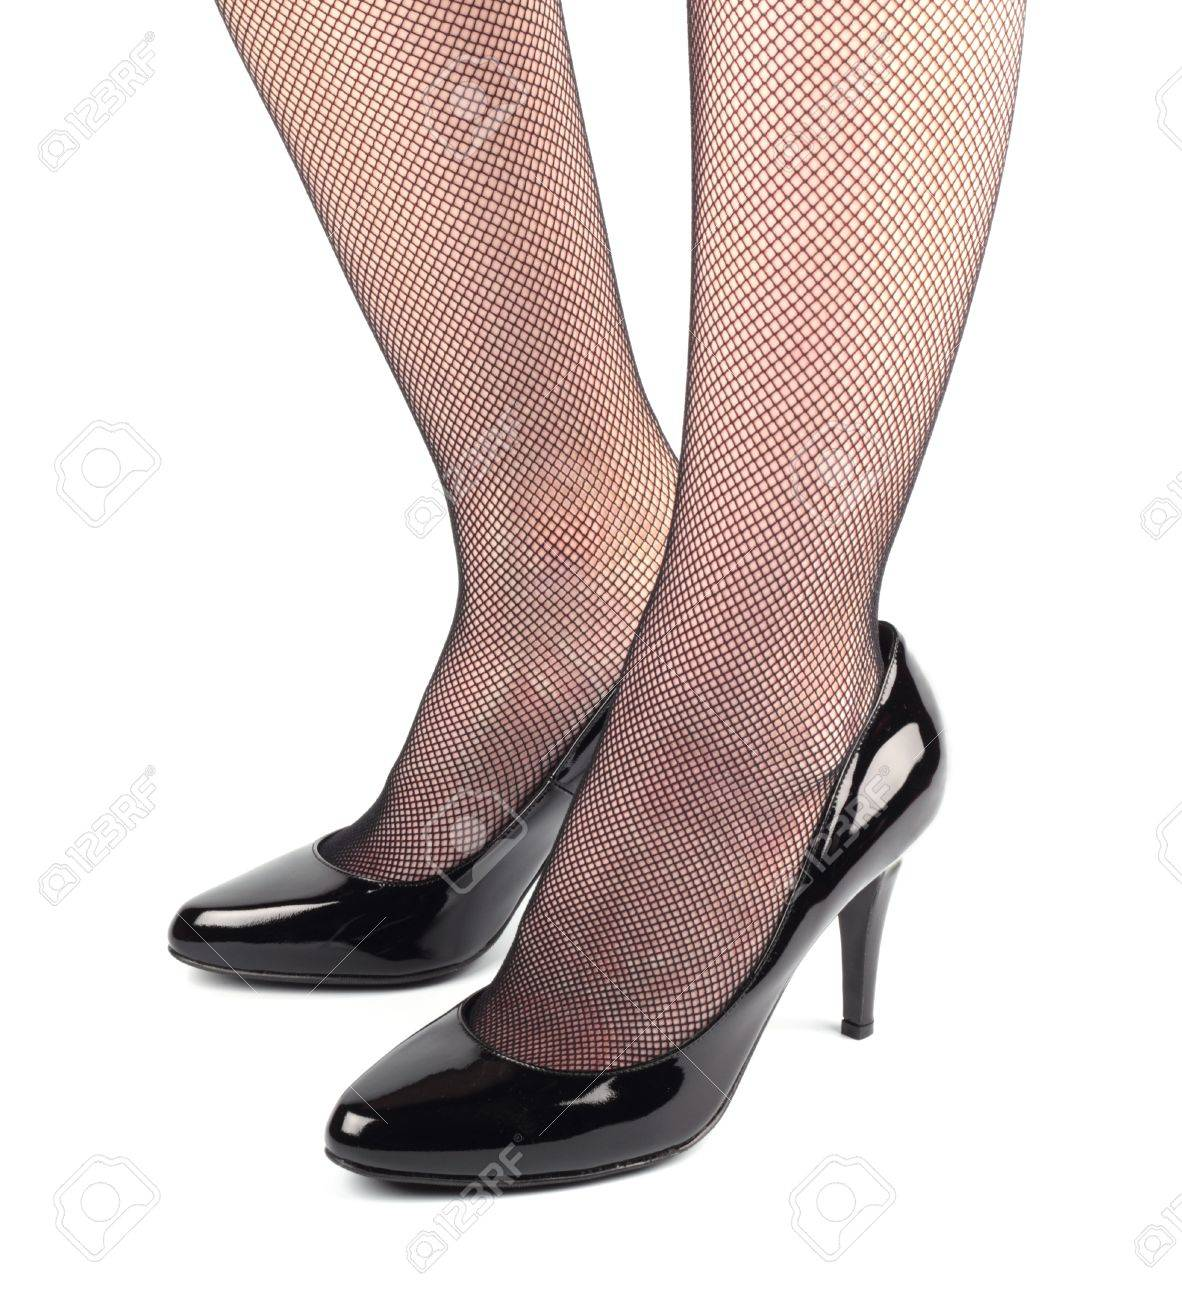 Stylish patent leather shoes girl legs in black patent leather female high heeled shoes isolated